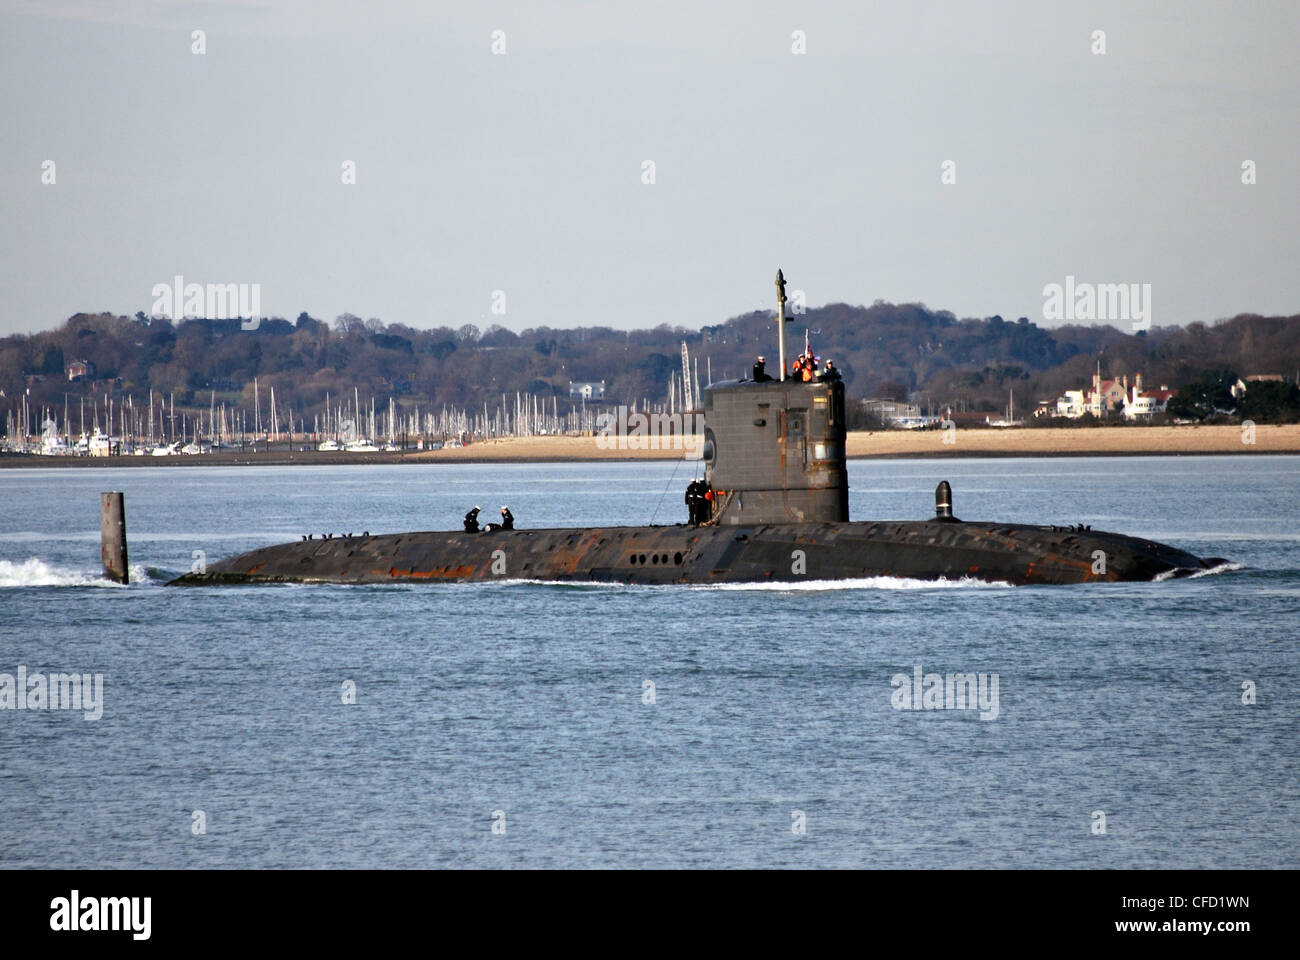 Royal Navy Submarine 'HMS Tireless' leaving from Southampton after a 5 day visit - Stock Image